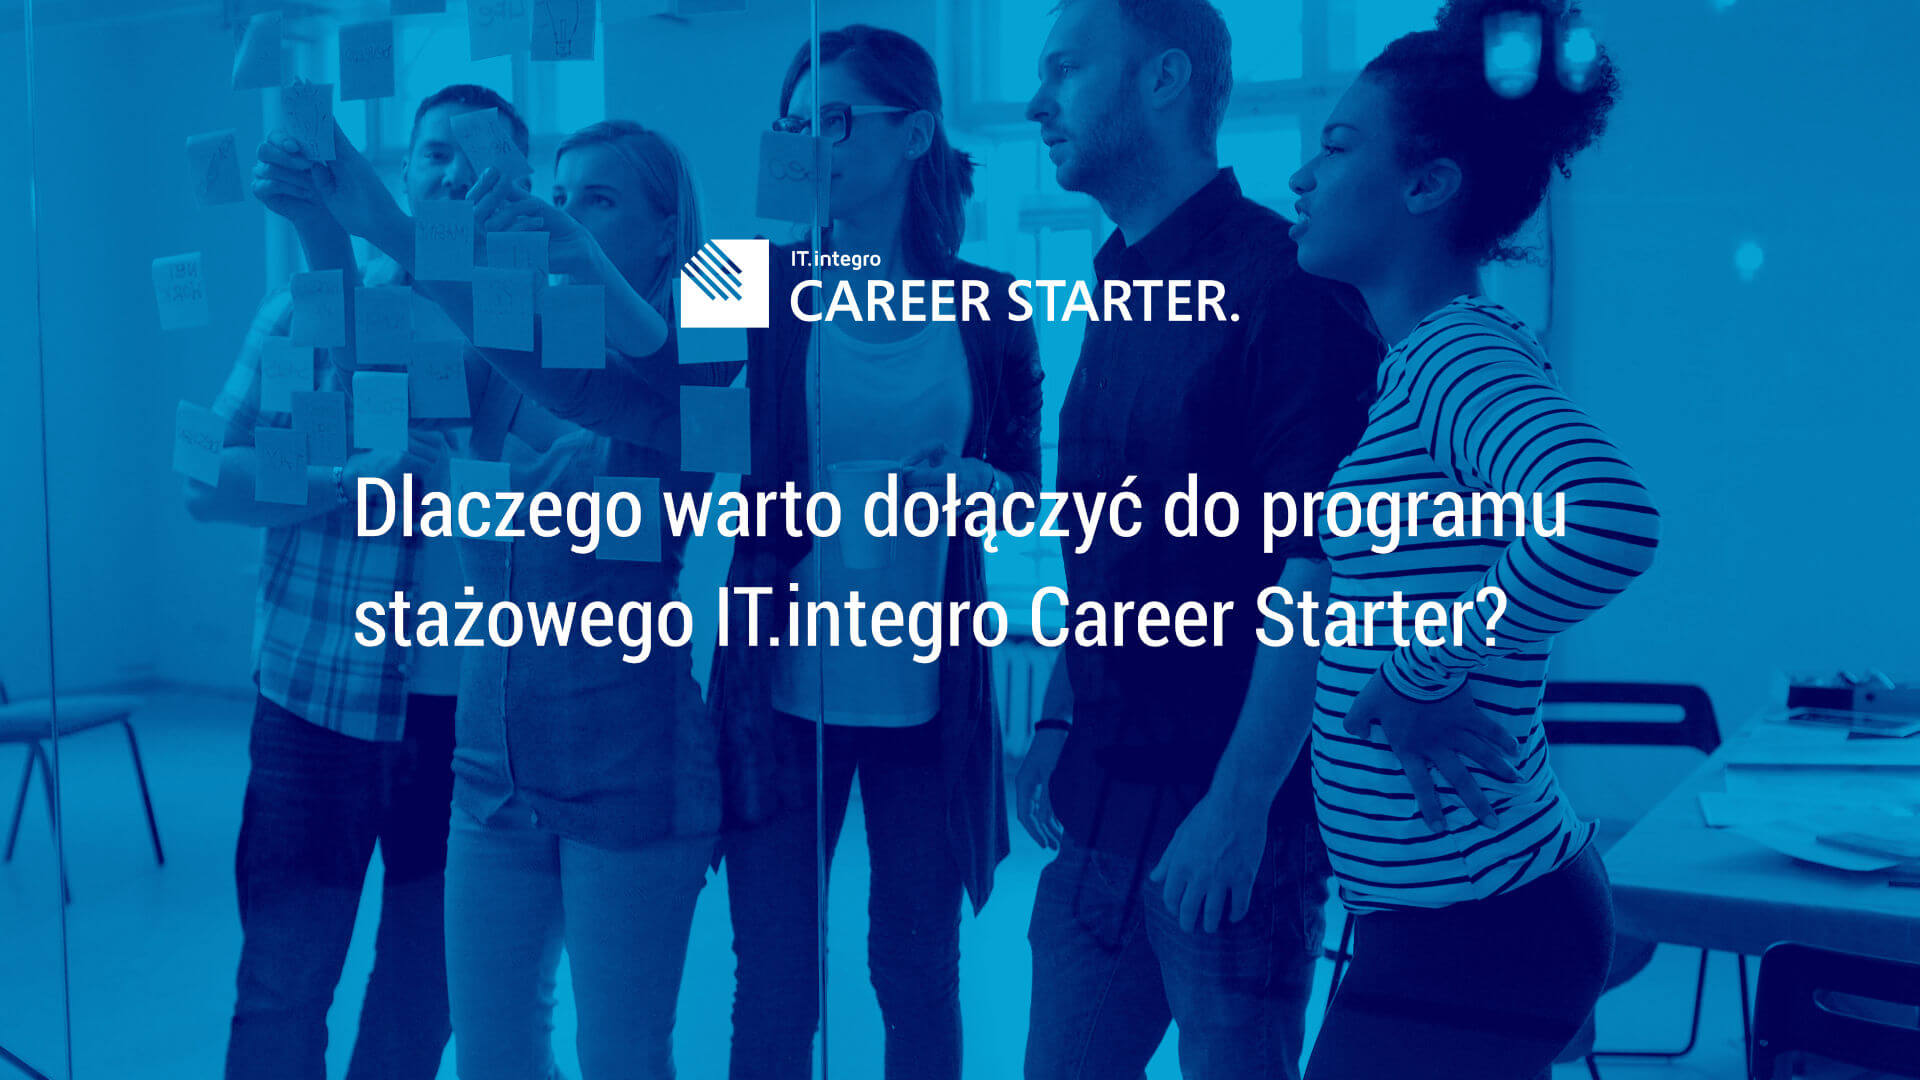 Program stażowy IT.integro Career Starter